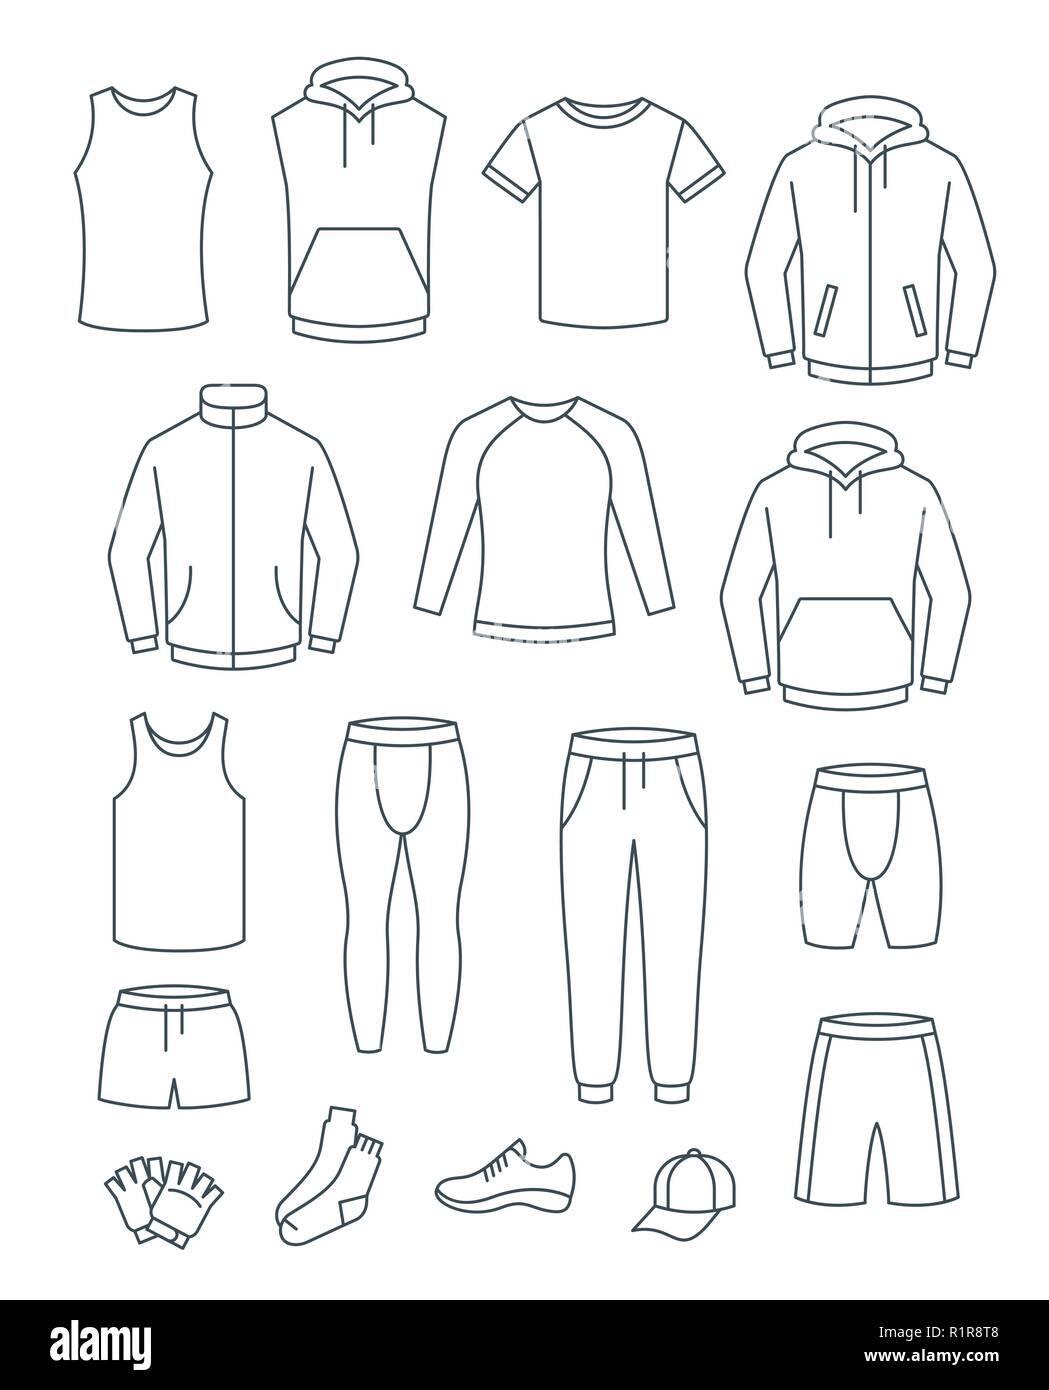 Tracksuit Bottoms Cut Out Stock Images & Pictures - Alamy